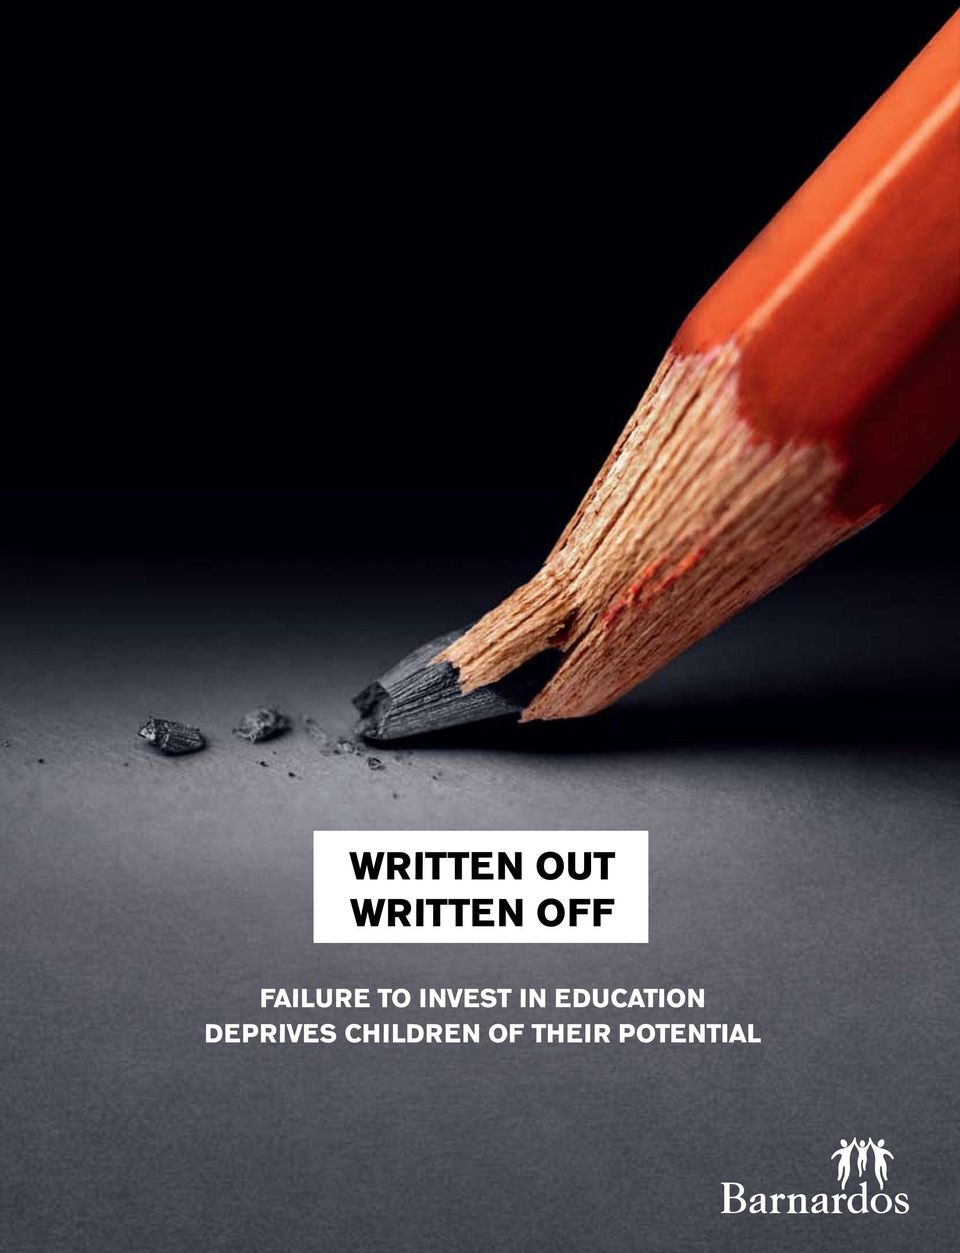 in education deprives